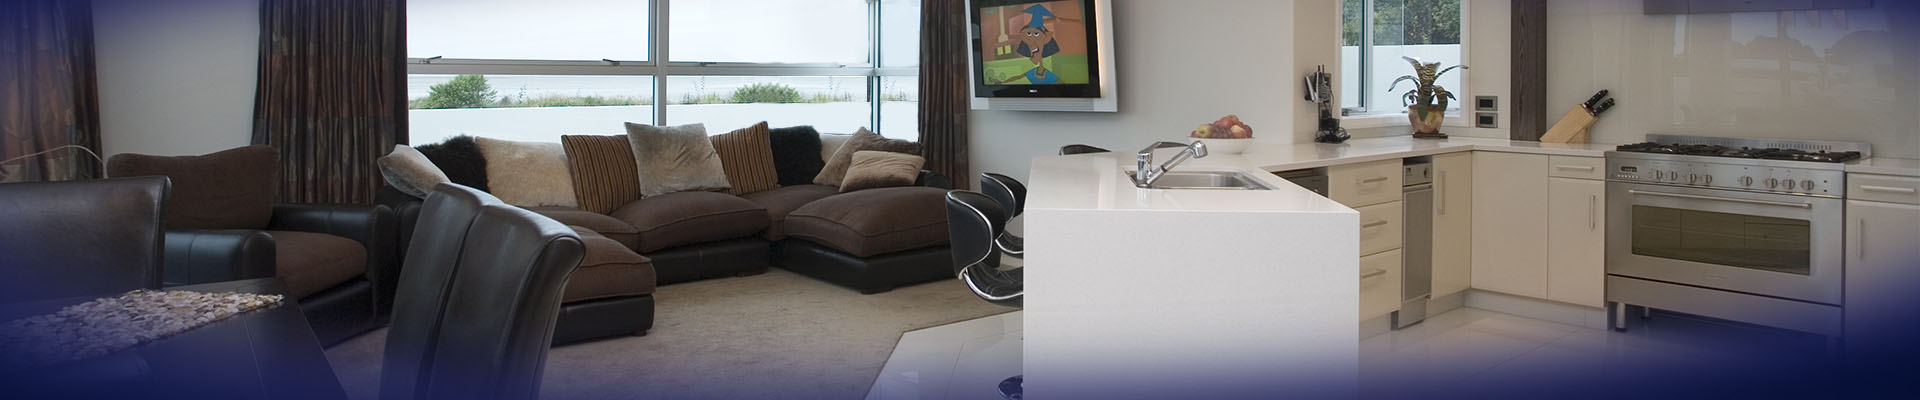 7 things hallmark homes canterburys design and build specialist img - 7 things you must ask - Hallmark Homes - Canterbury's design and builds